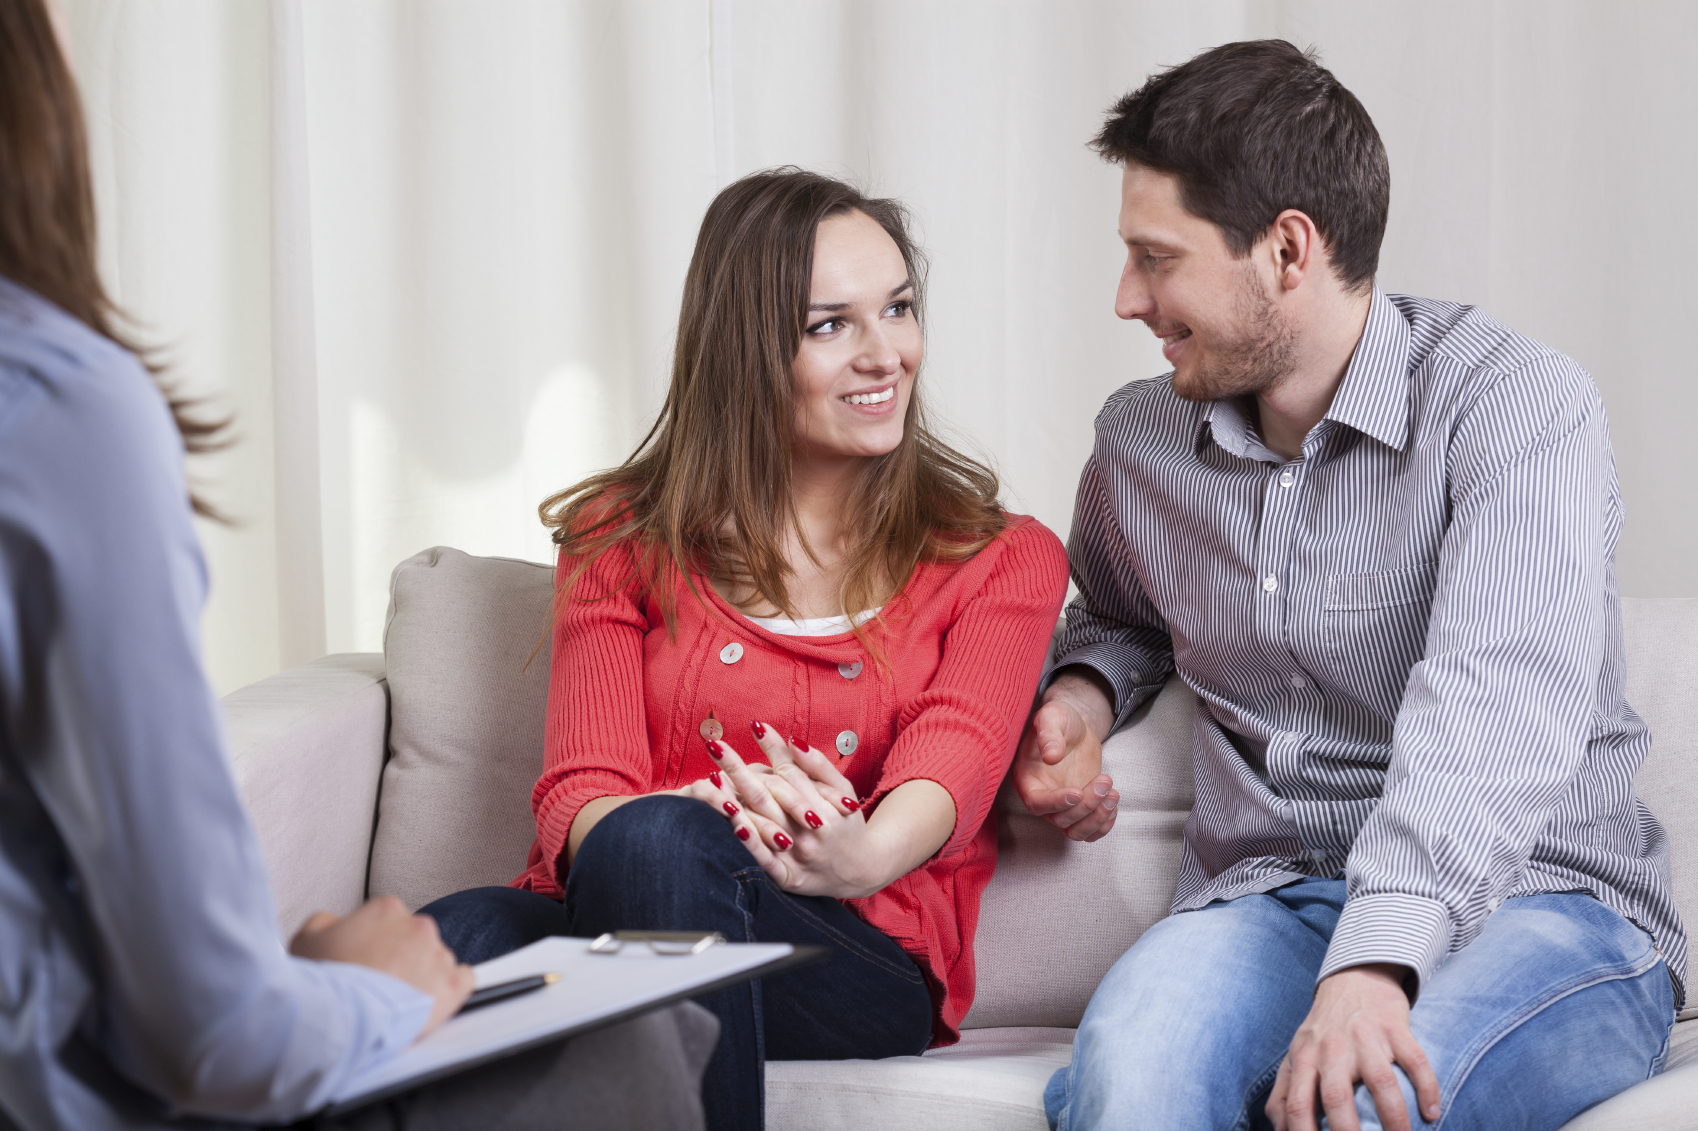 Therapist with Smiling Couple